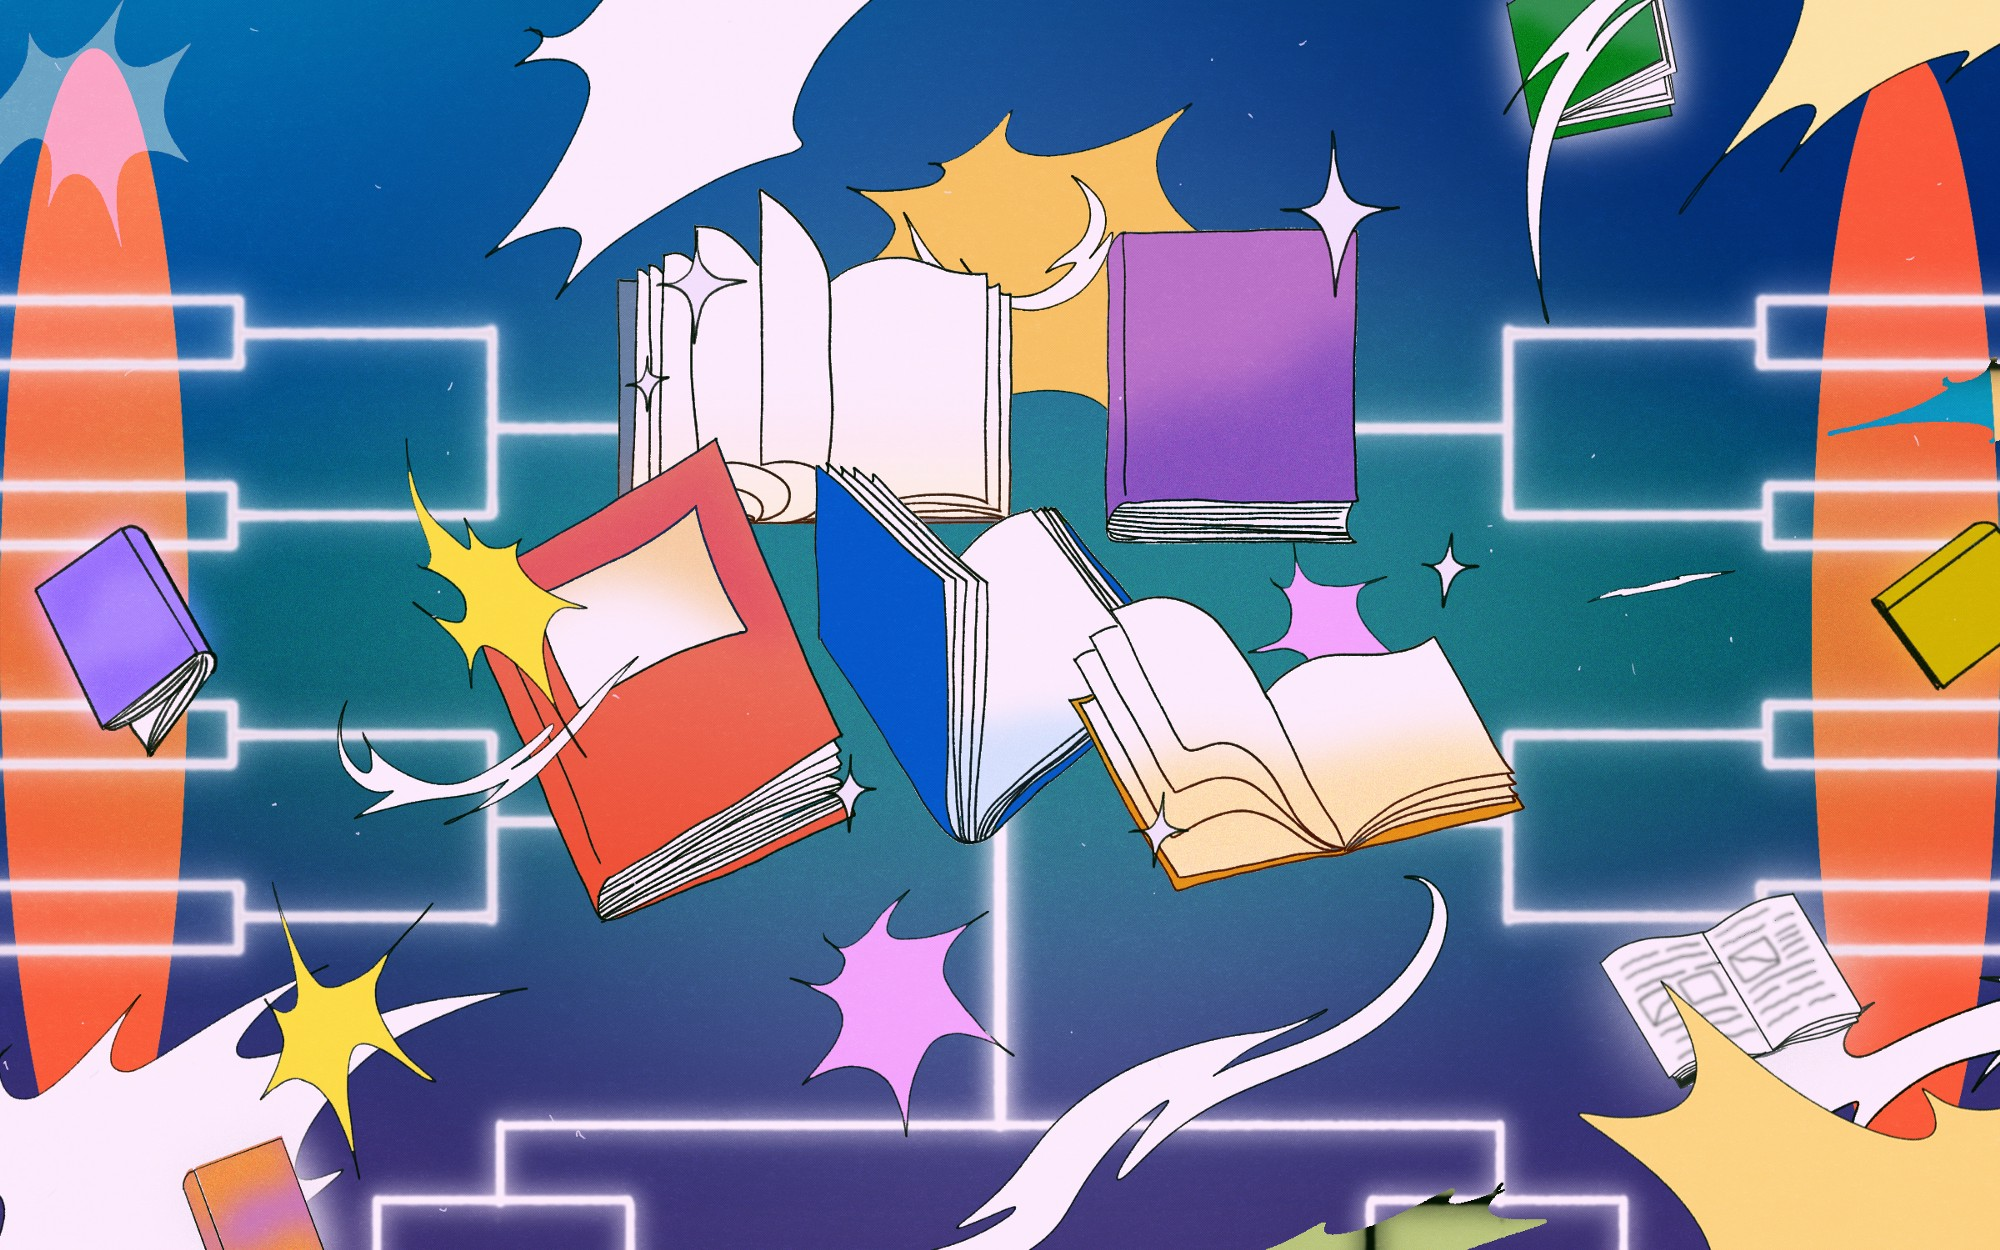 An illustration of 5 different books, some opened and others closed. Behind the books are sparkles and bracket style outline.